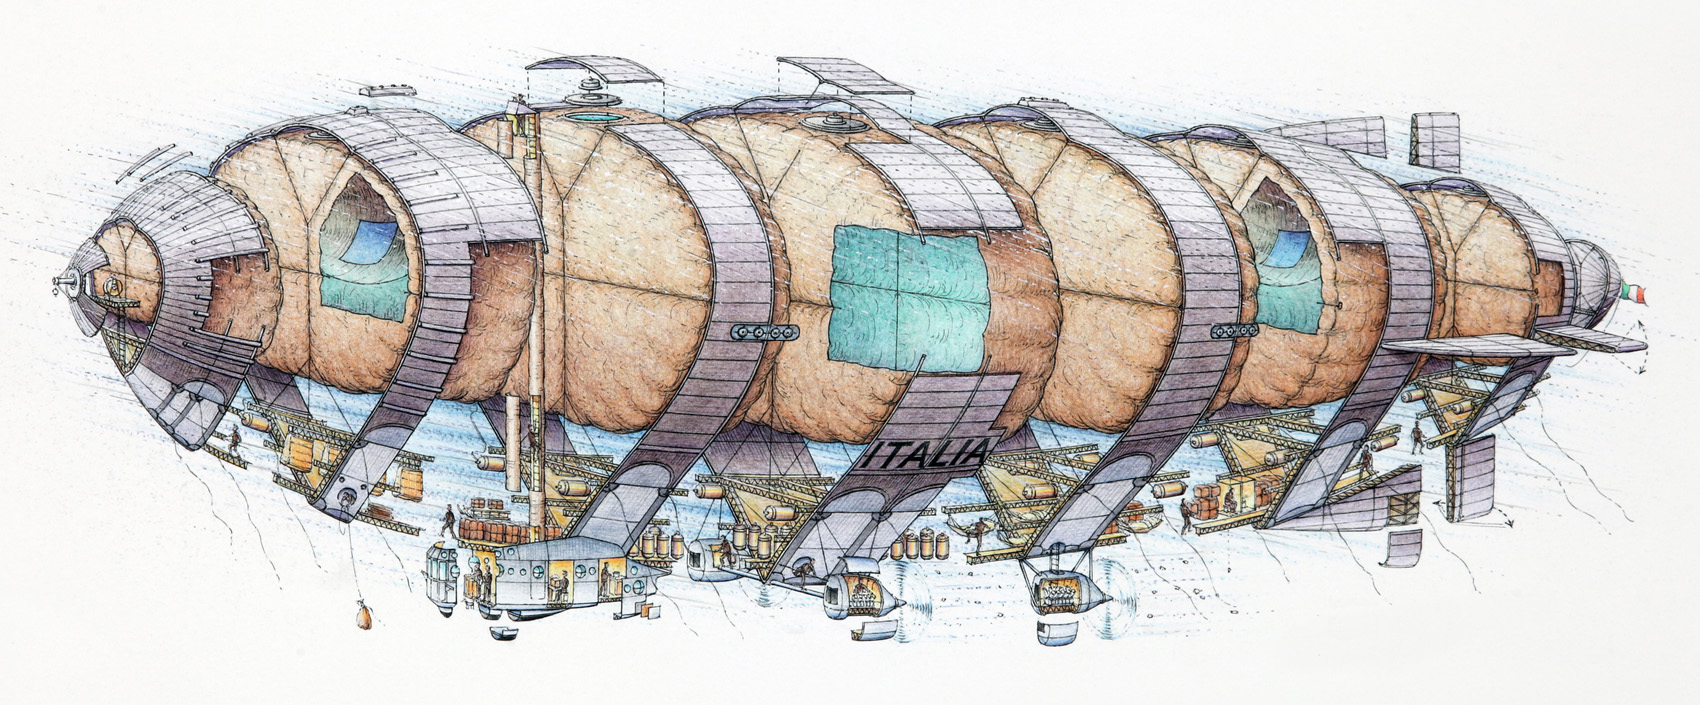 /illustrations-techniques/Airship-Italia.jpg